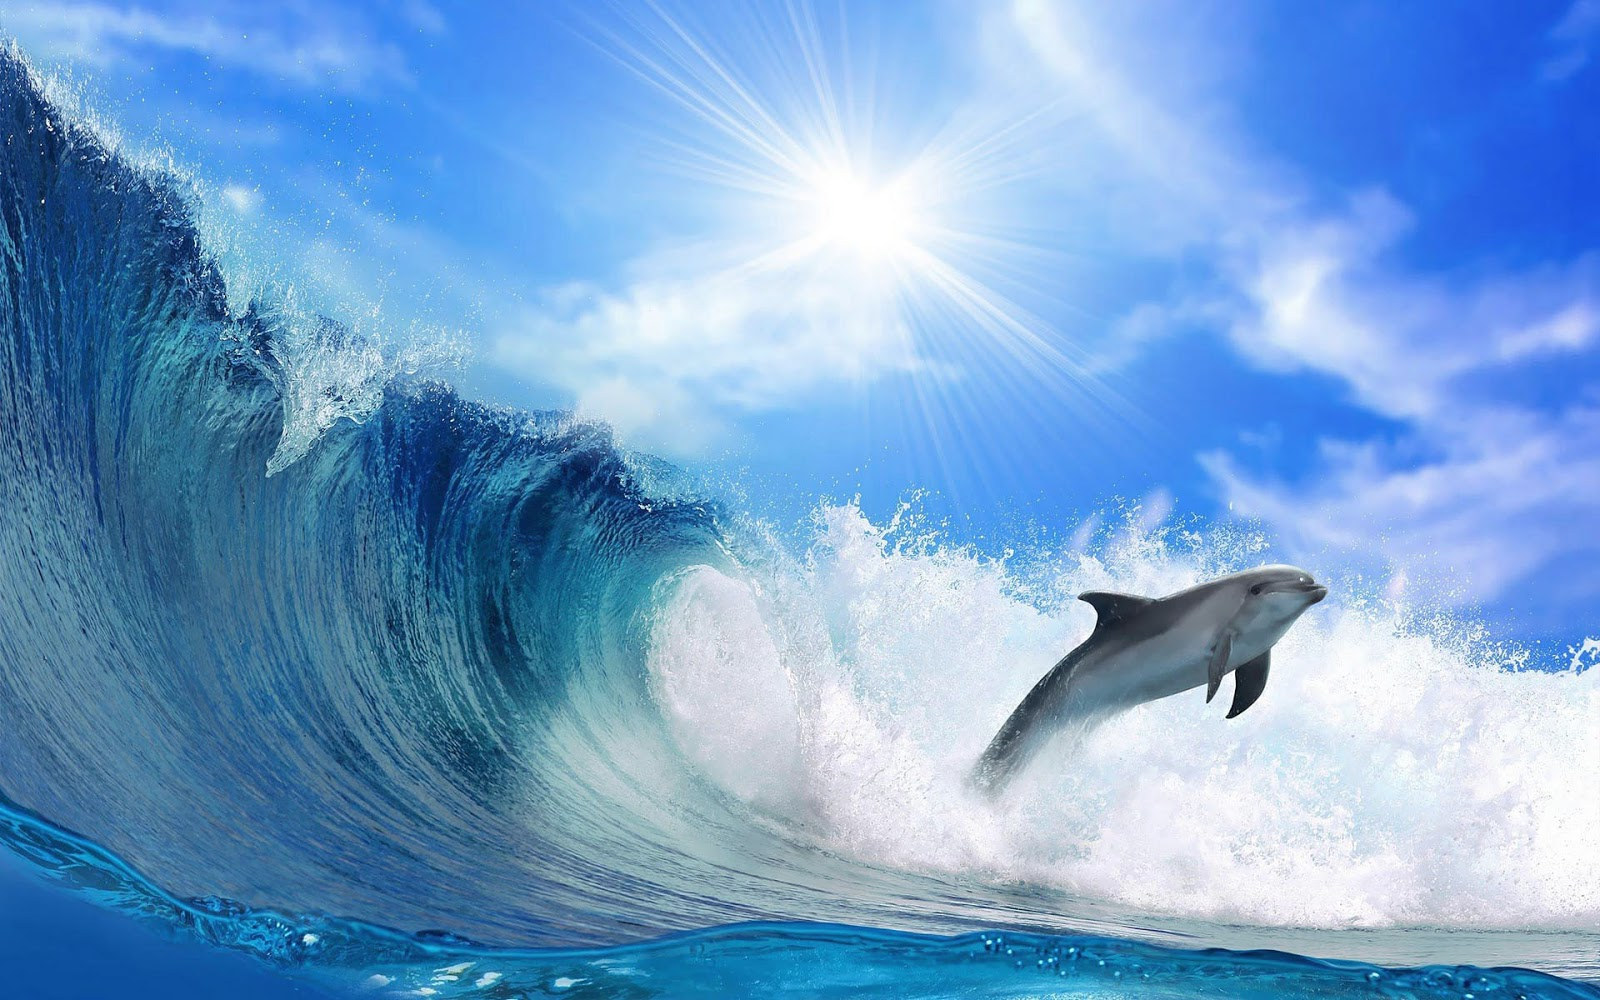 Dolphins wallpapers high definition wallpapers cool nature - Hd Dolphins Wallpapers And Photos Hd Animals Wallpapers